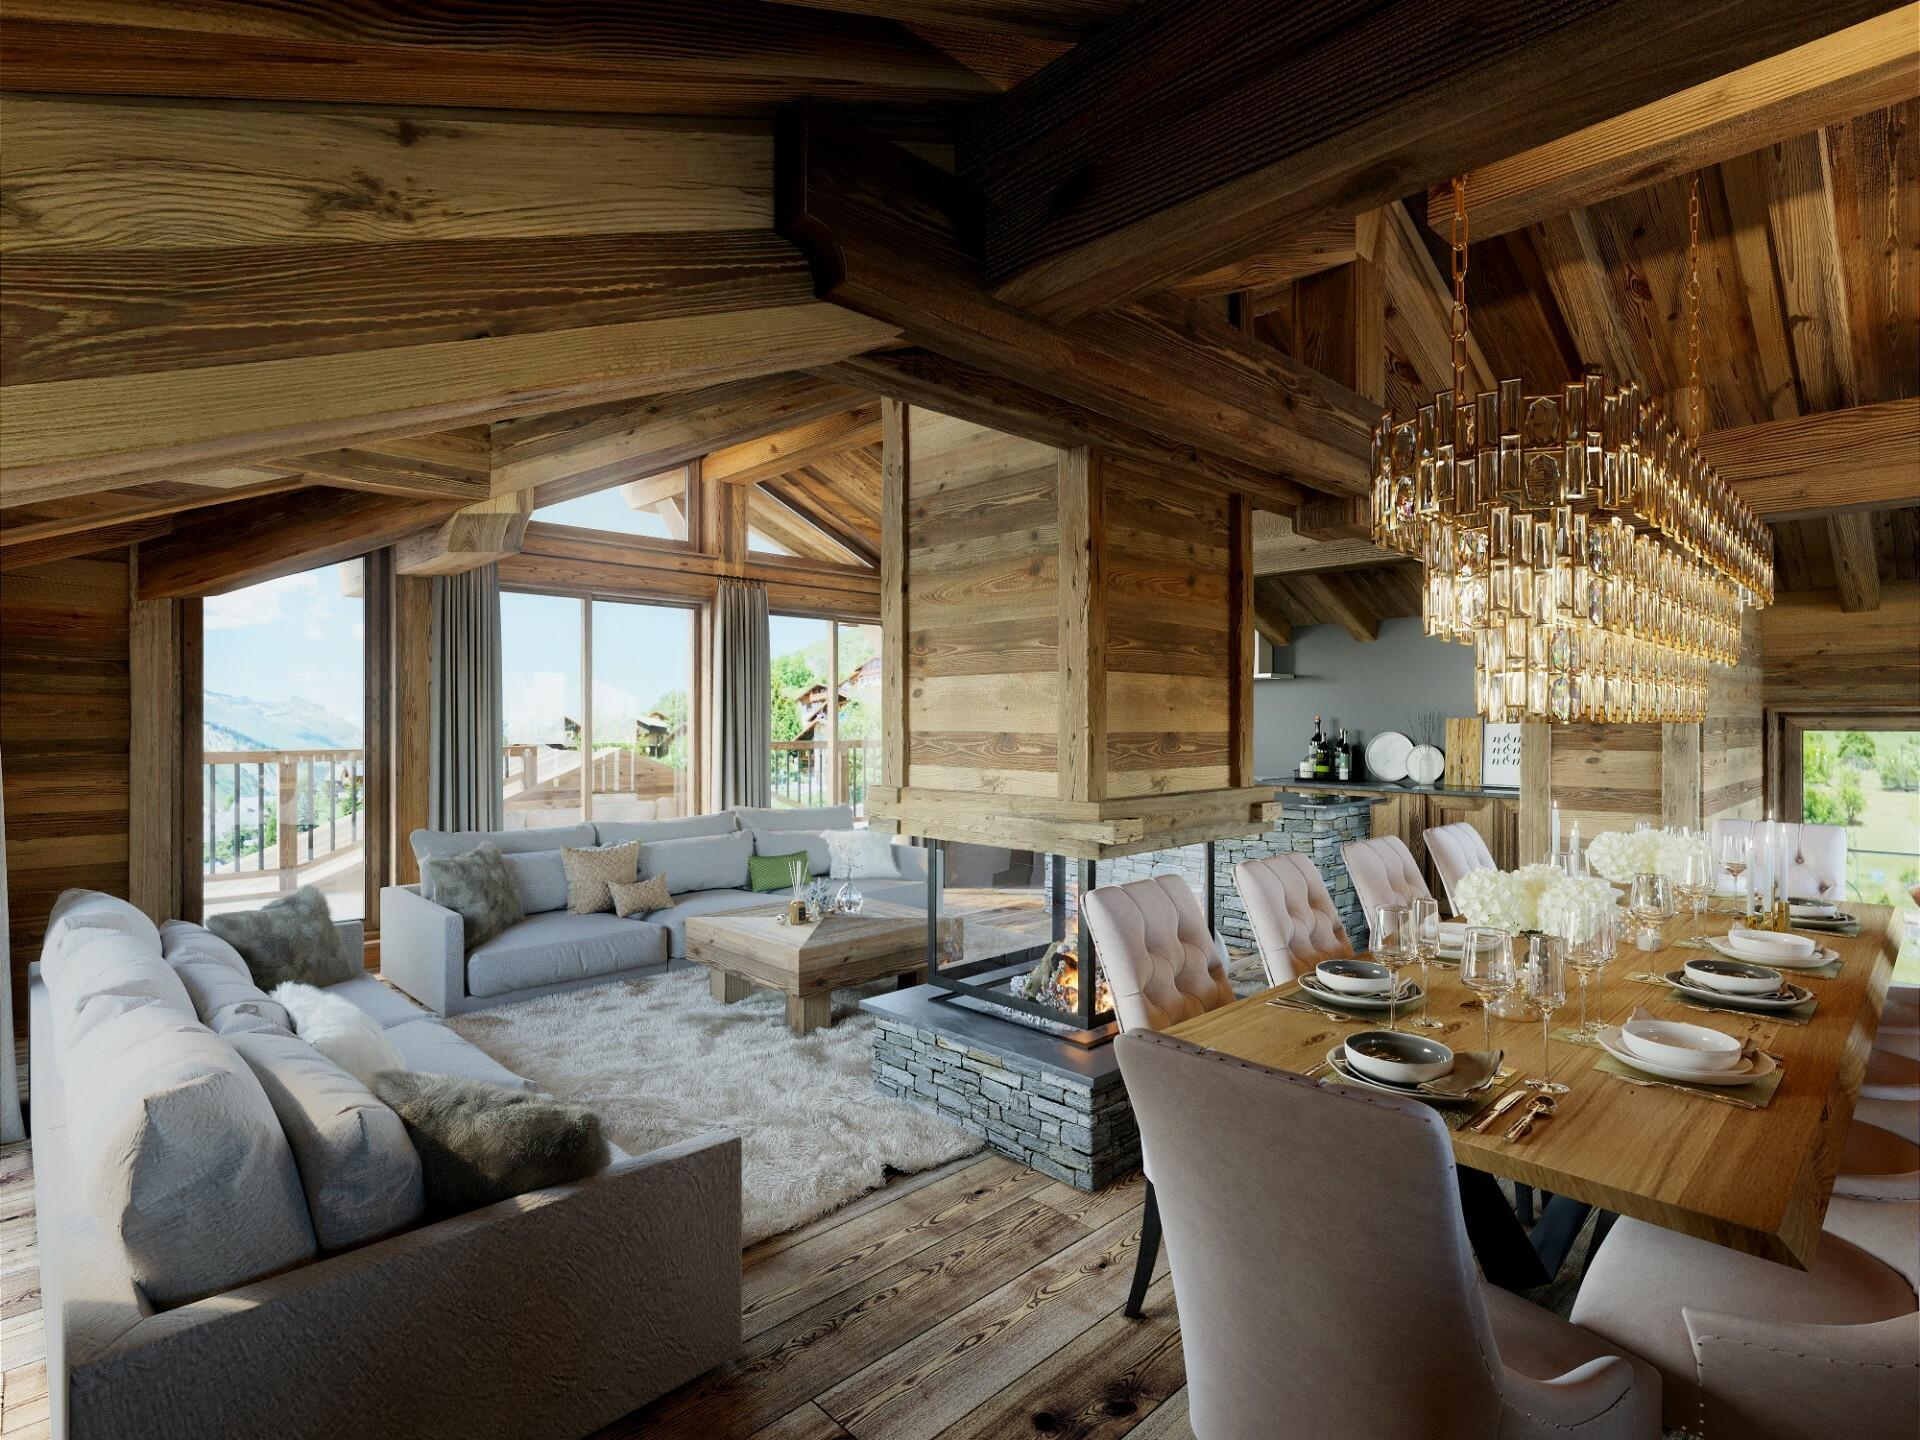 SUPERB NEW CHALET